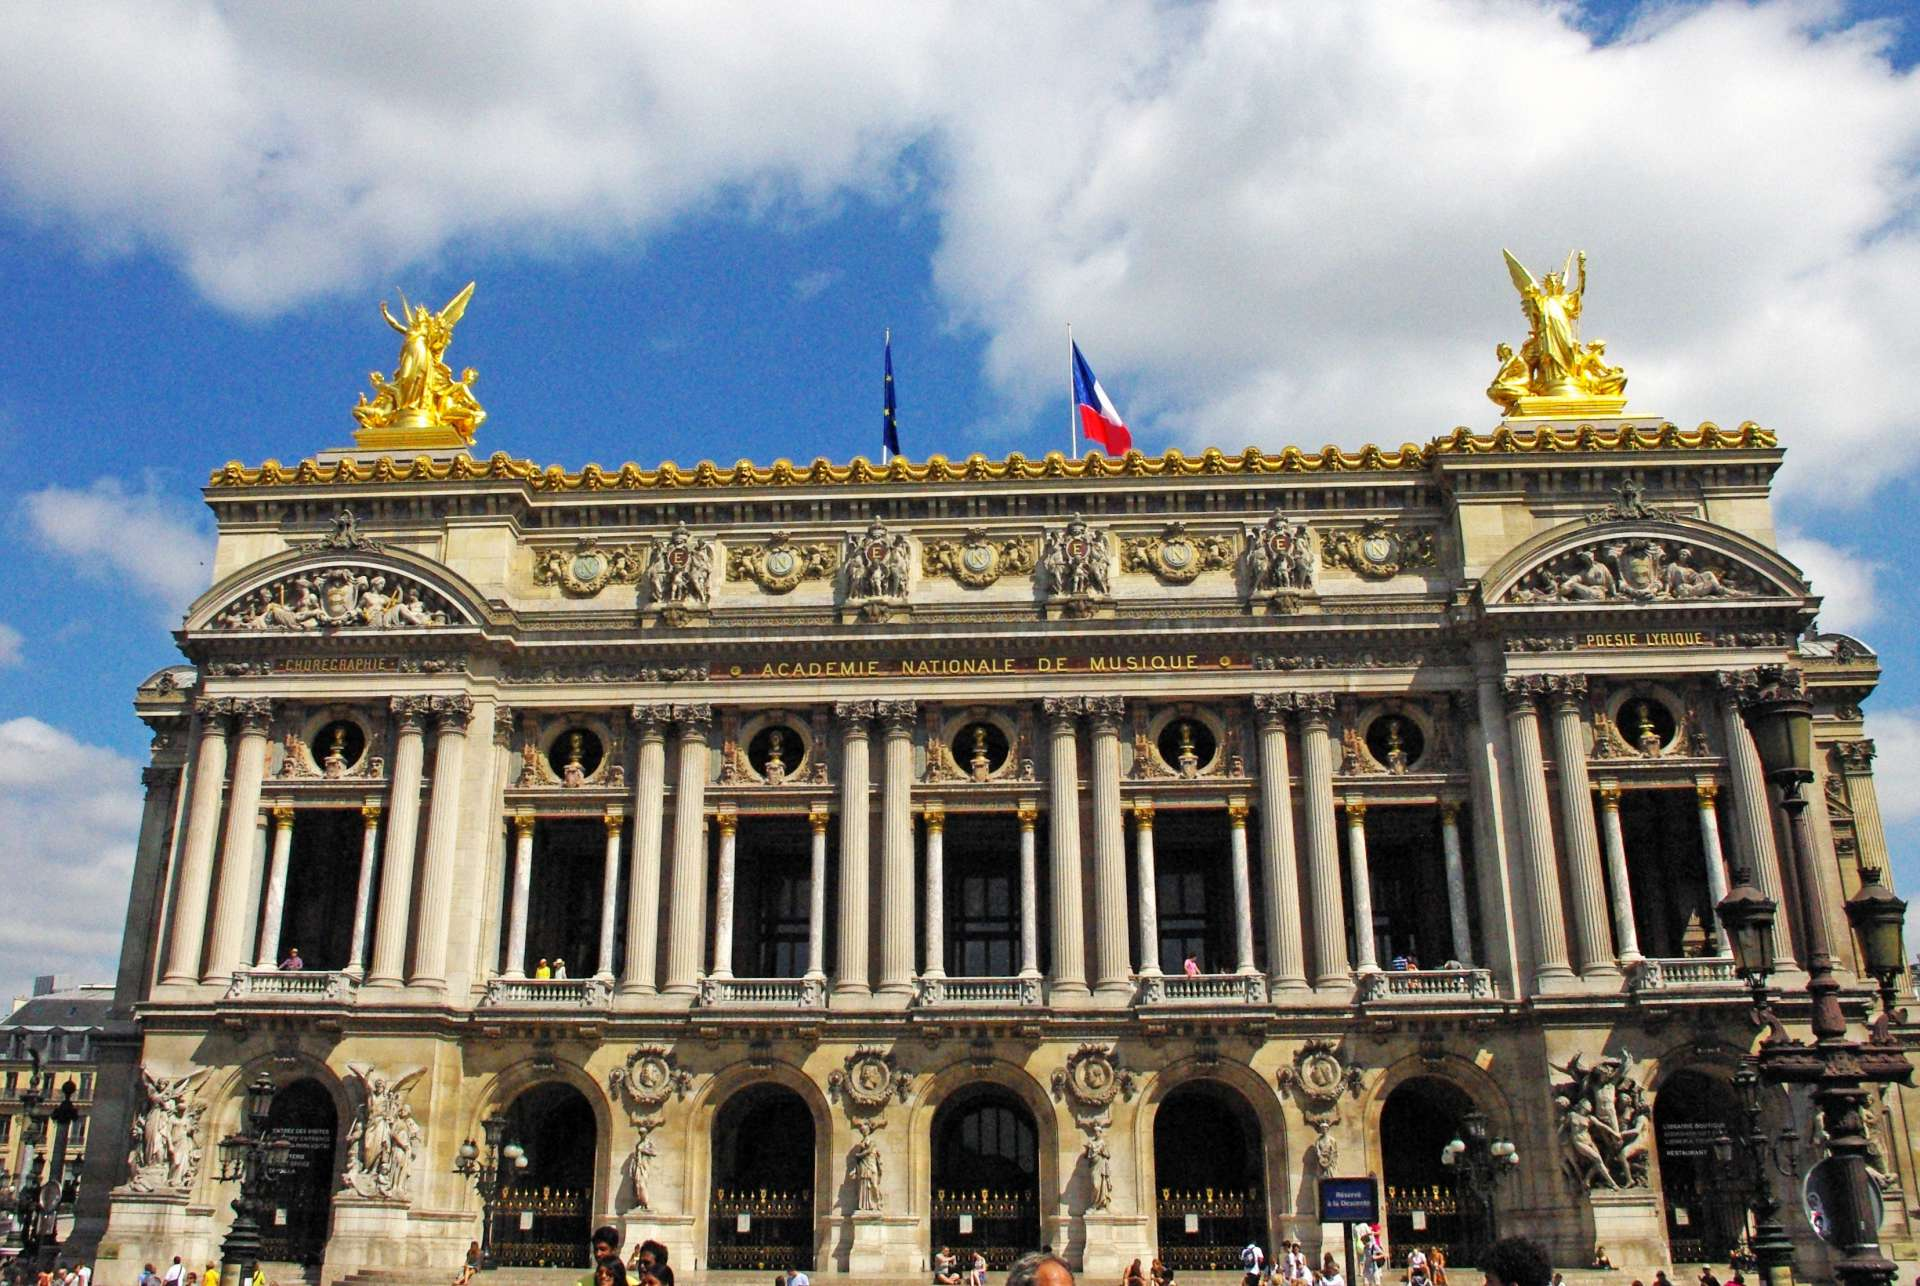 Palais Garnier in Paris 37 copyright French Moments